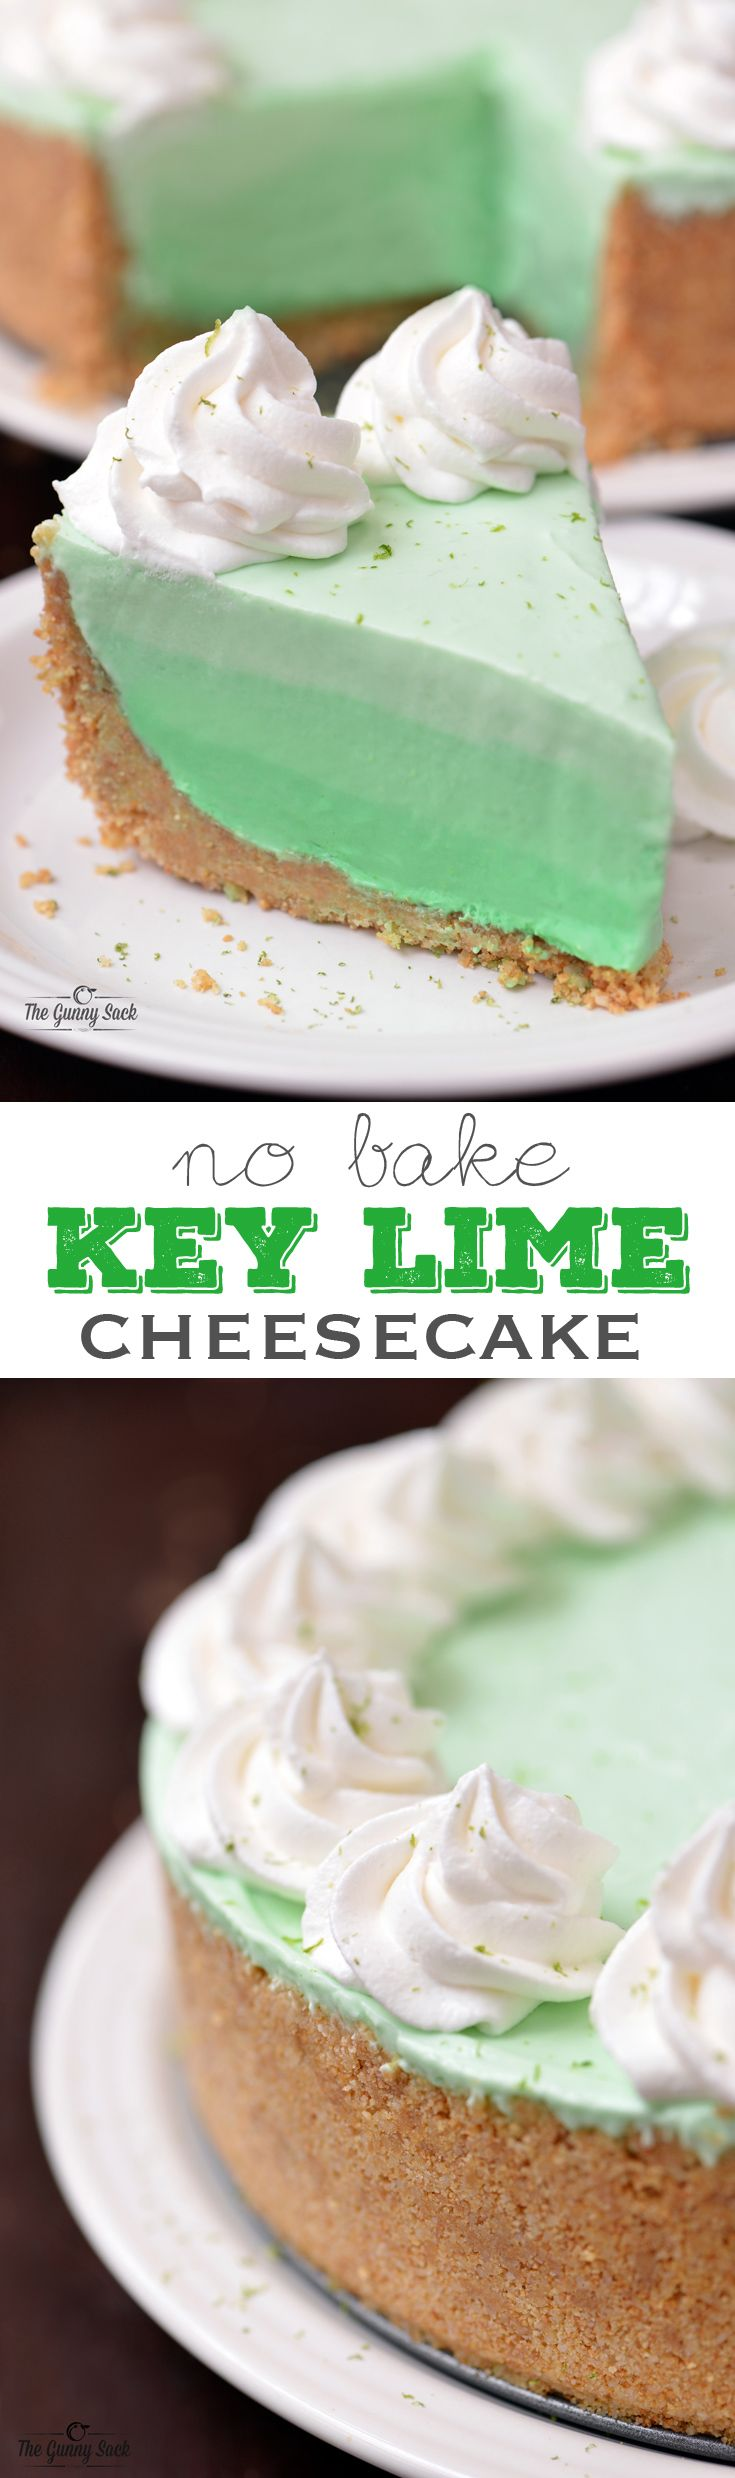 This key lime cheesecake is so easy to make, yet it looks impressive. This no bake recipe features a macadamia nut and graham cracker crust with an ombre cheesecake filling. #client